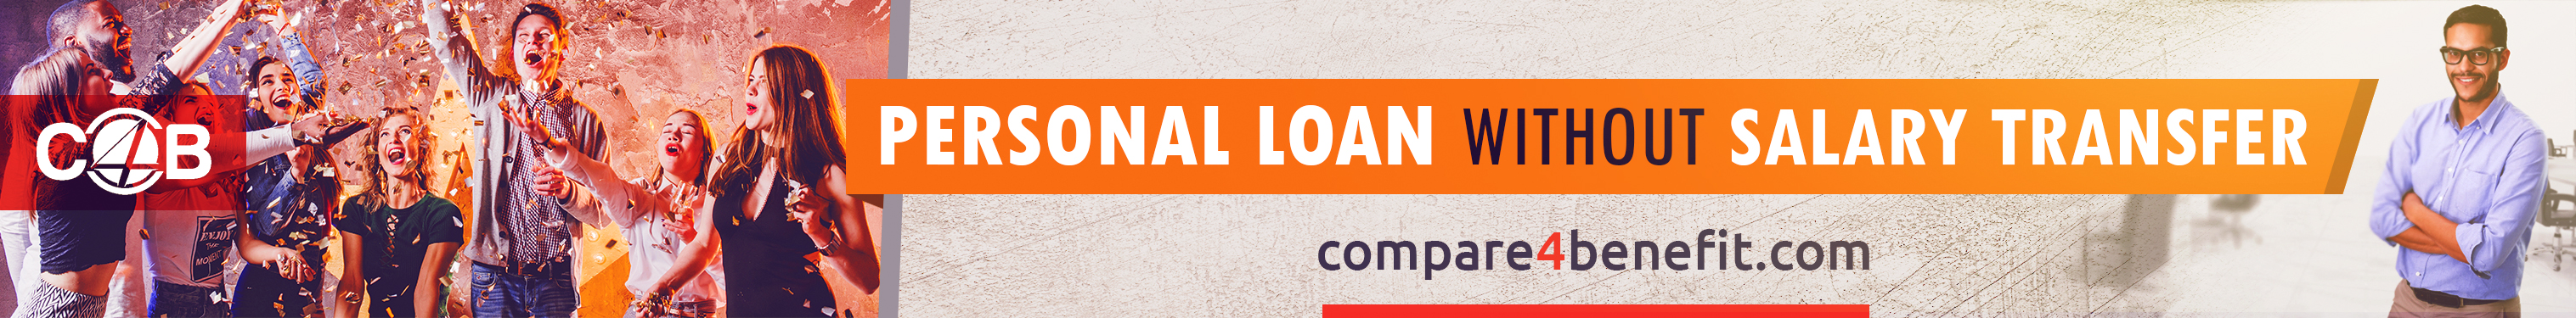 Personal loan UAE - No Salary Transfer